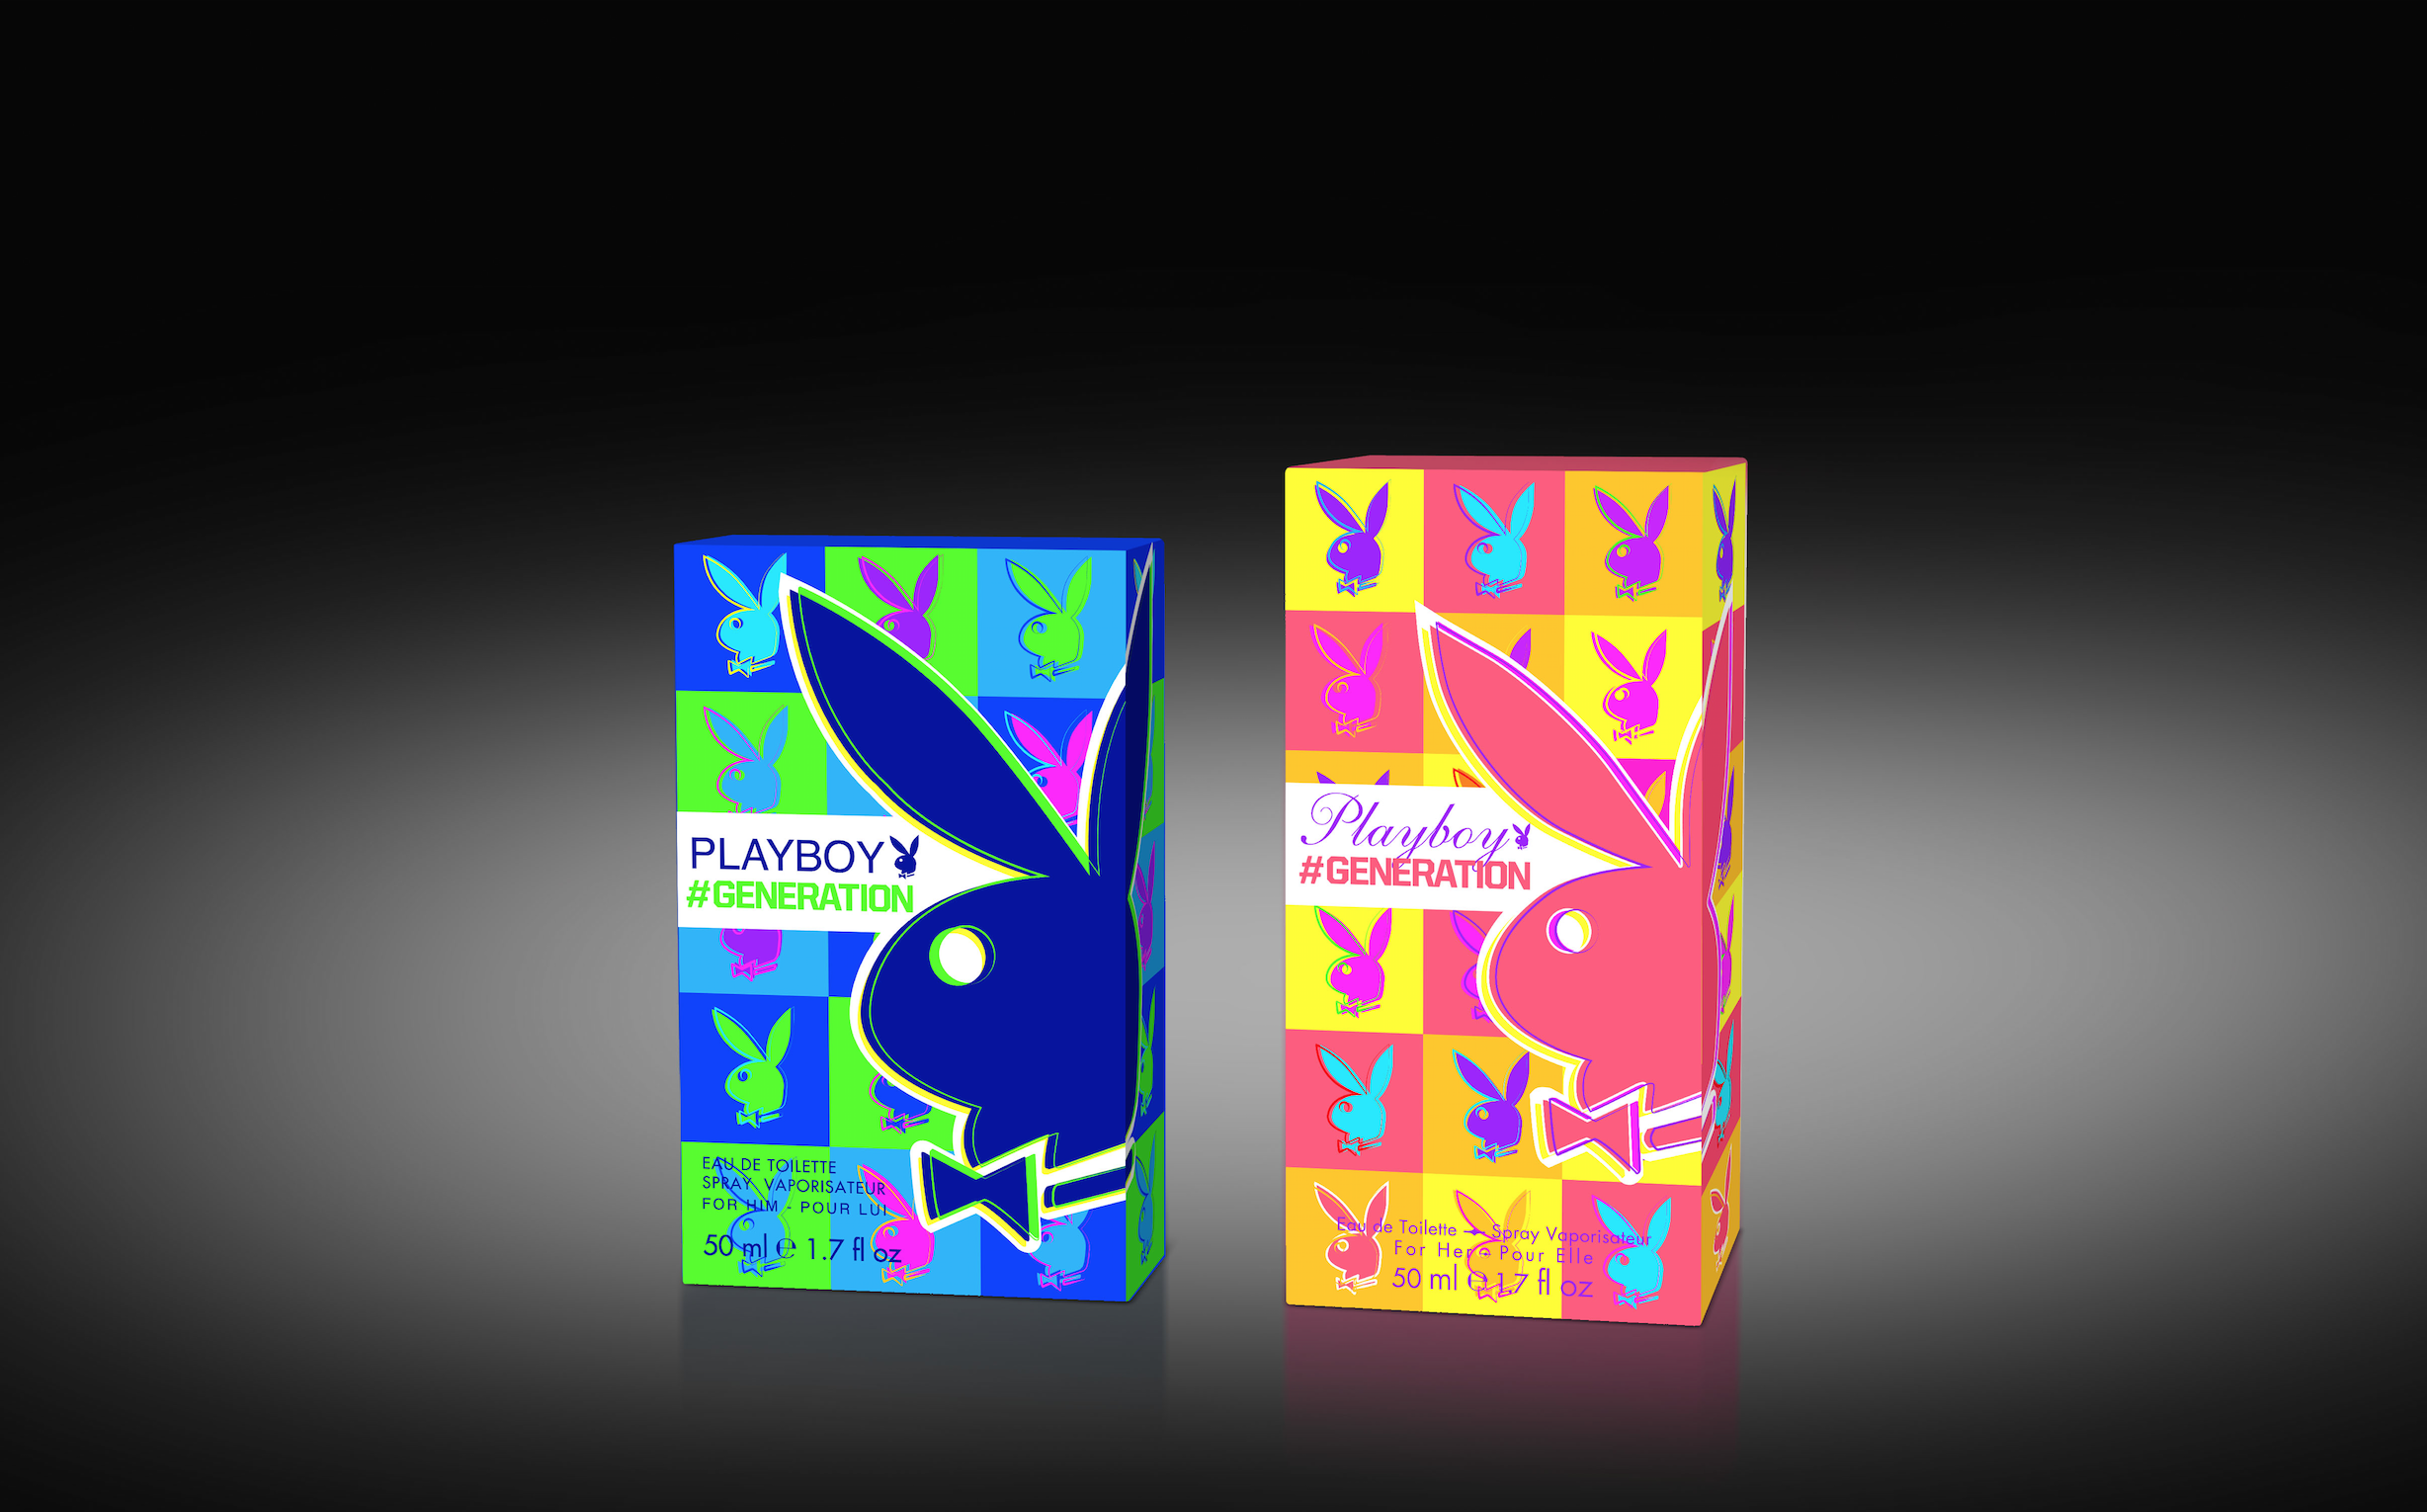 Playboy #packaging #design I Nicolas Baral